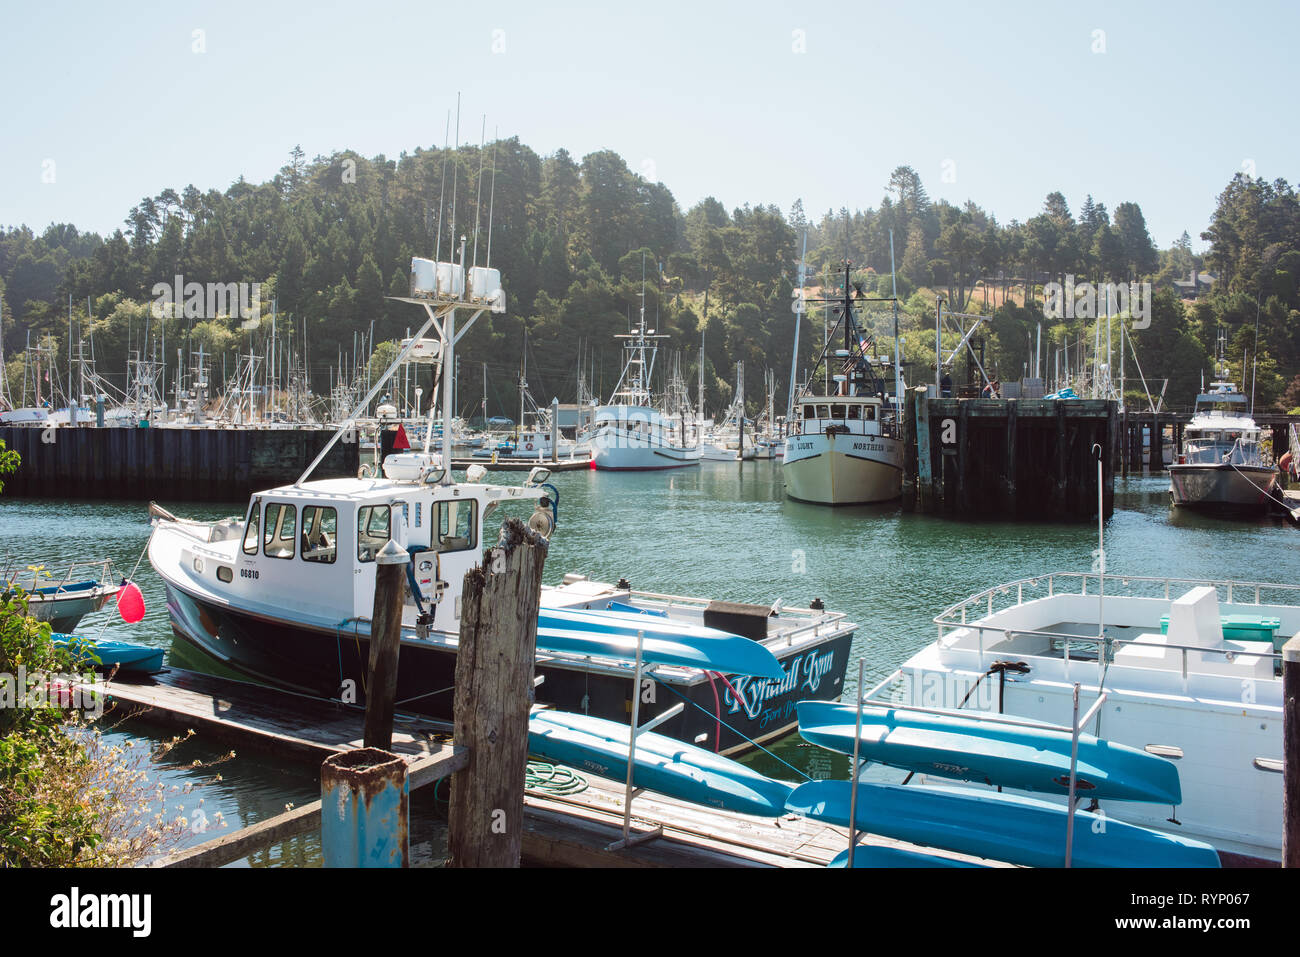 Boats and fishing supplies at rest in the harbor at Ft. Bragg, California. Stock Photo